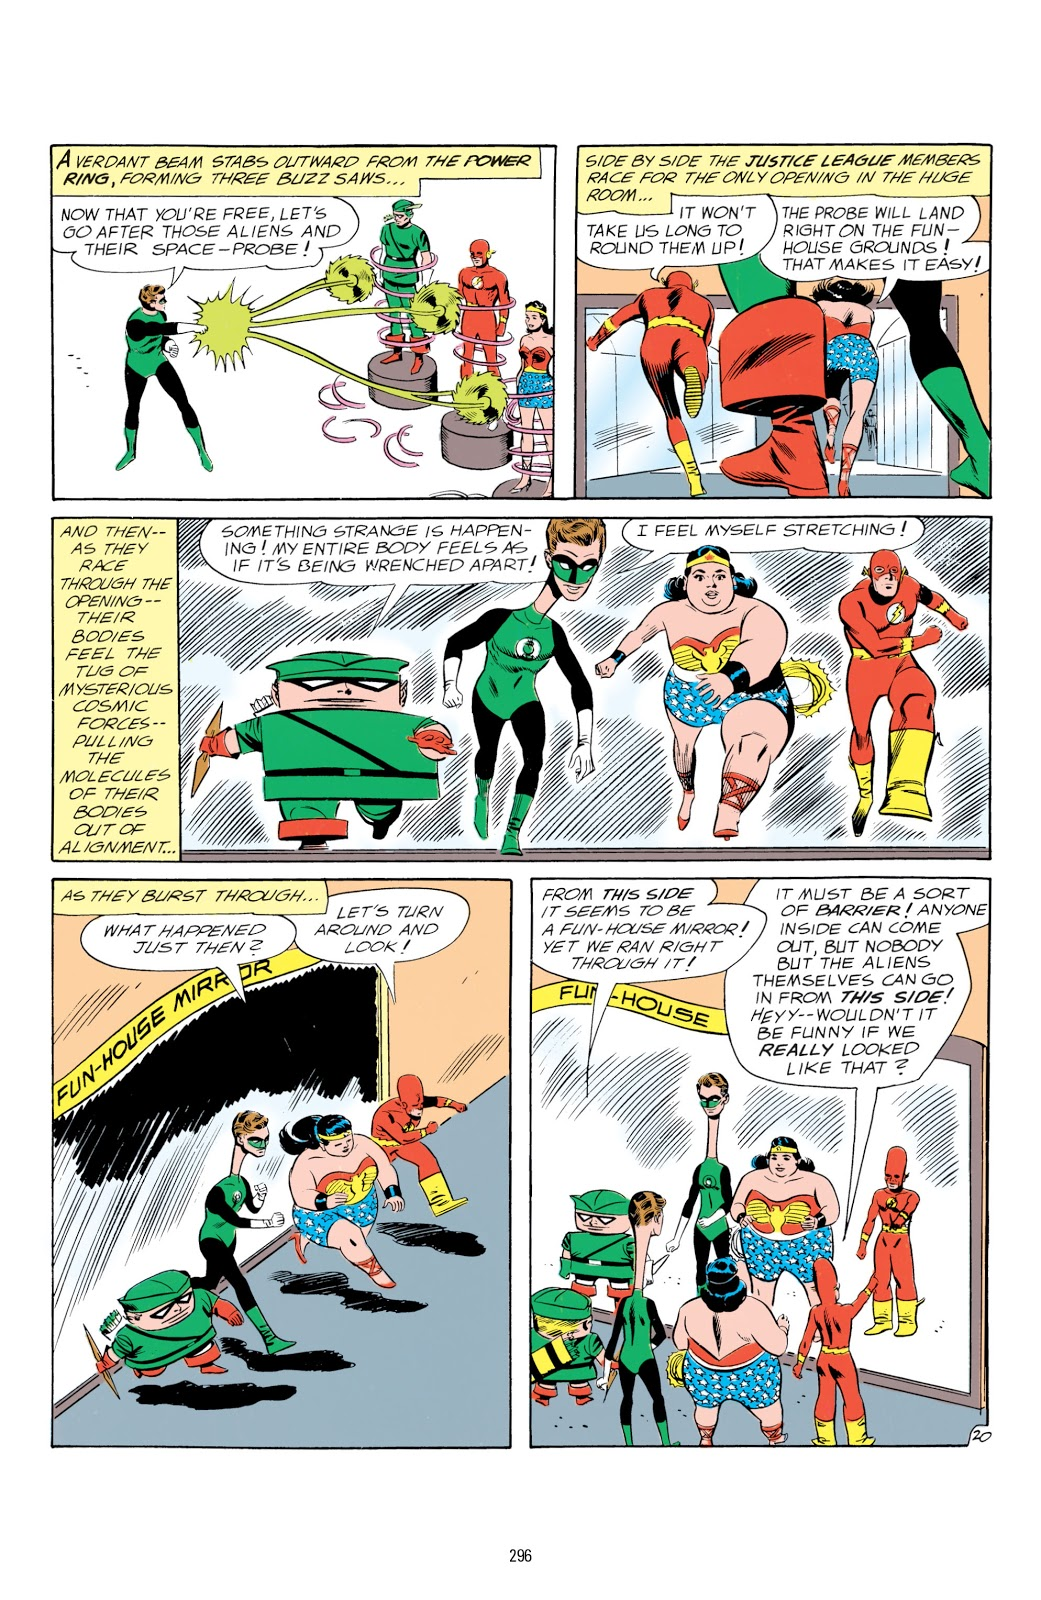 Justice League of America Archives v2 review